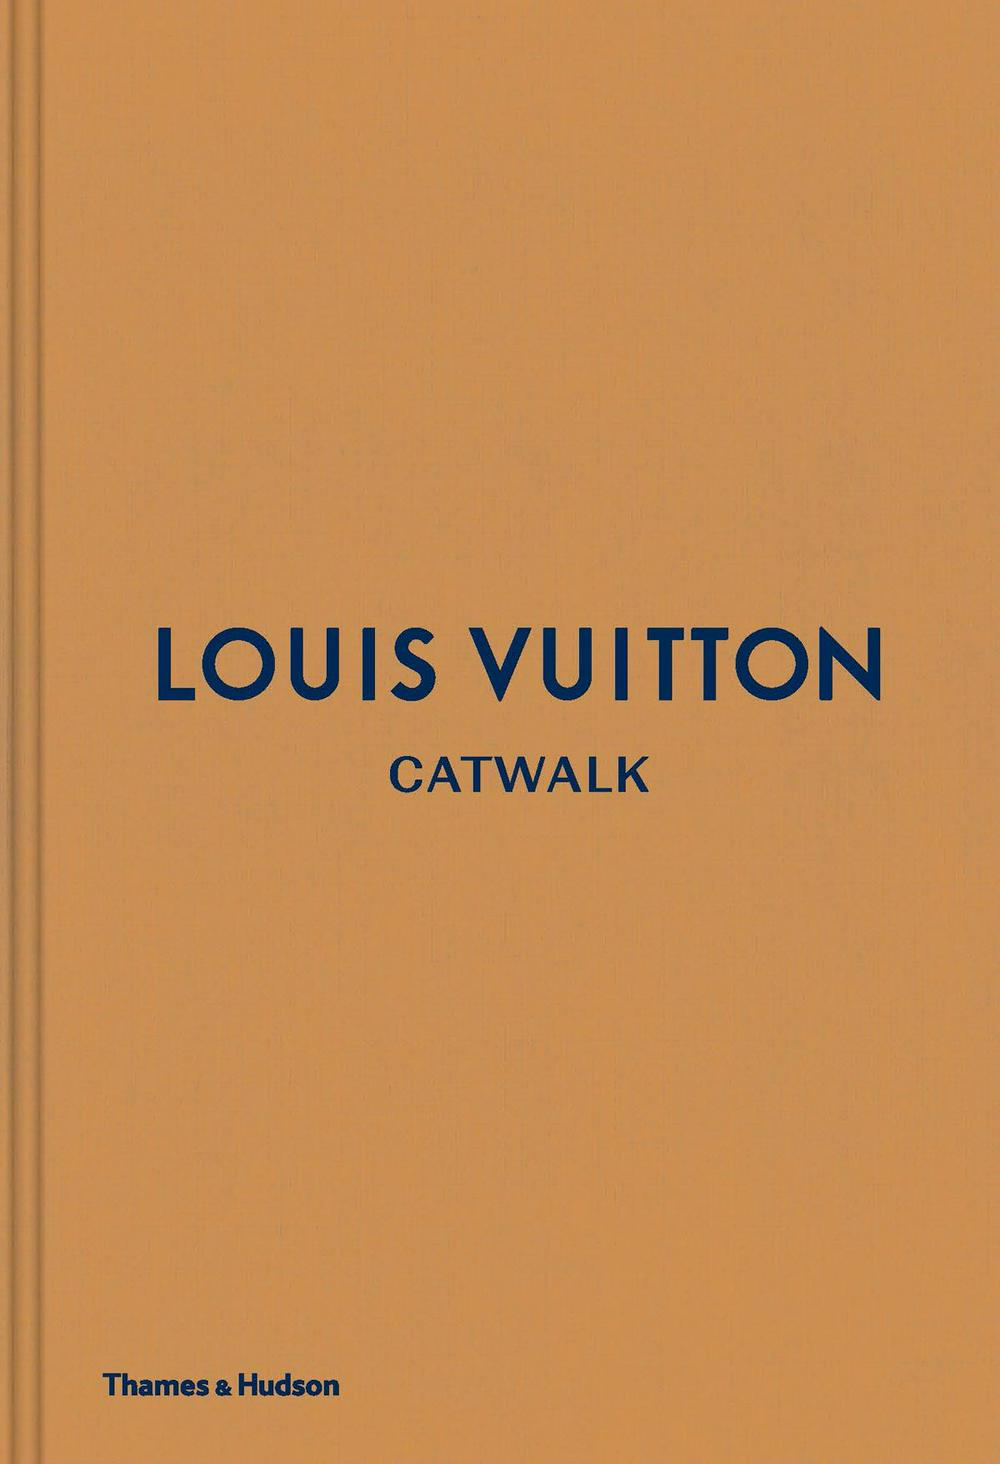 Louis Vuitton Catwalk Book